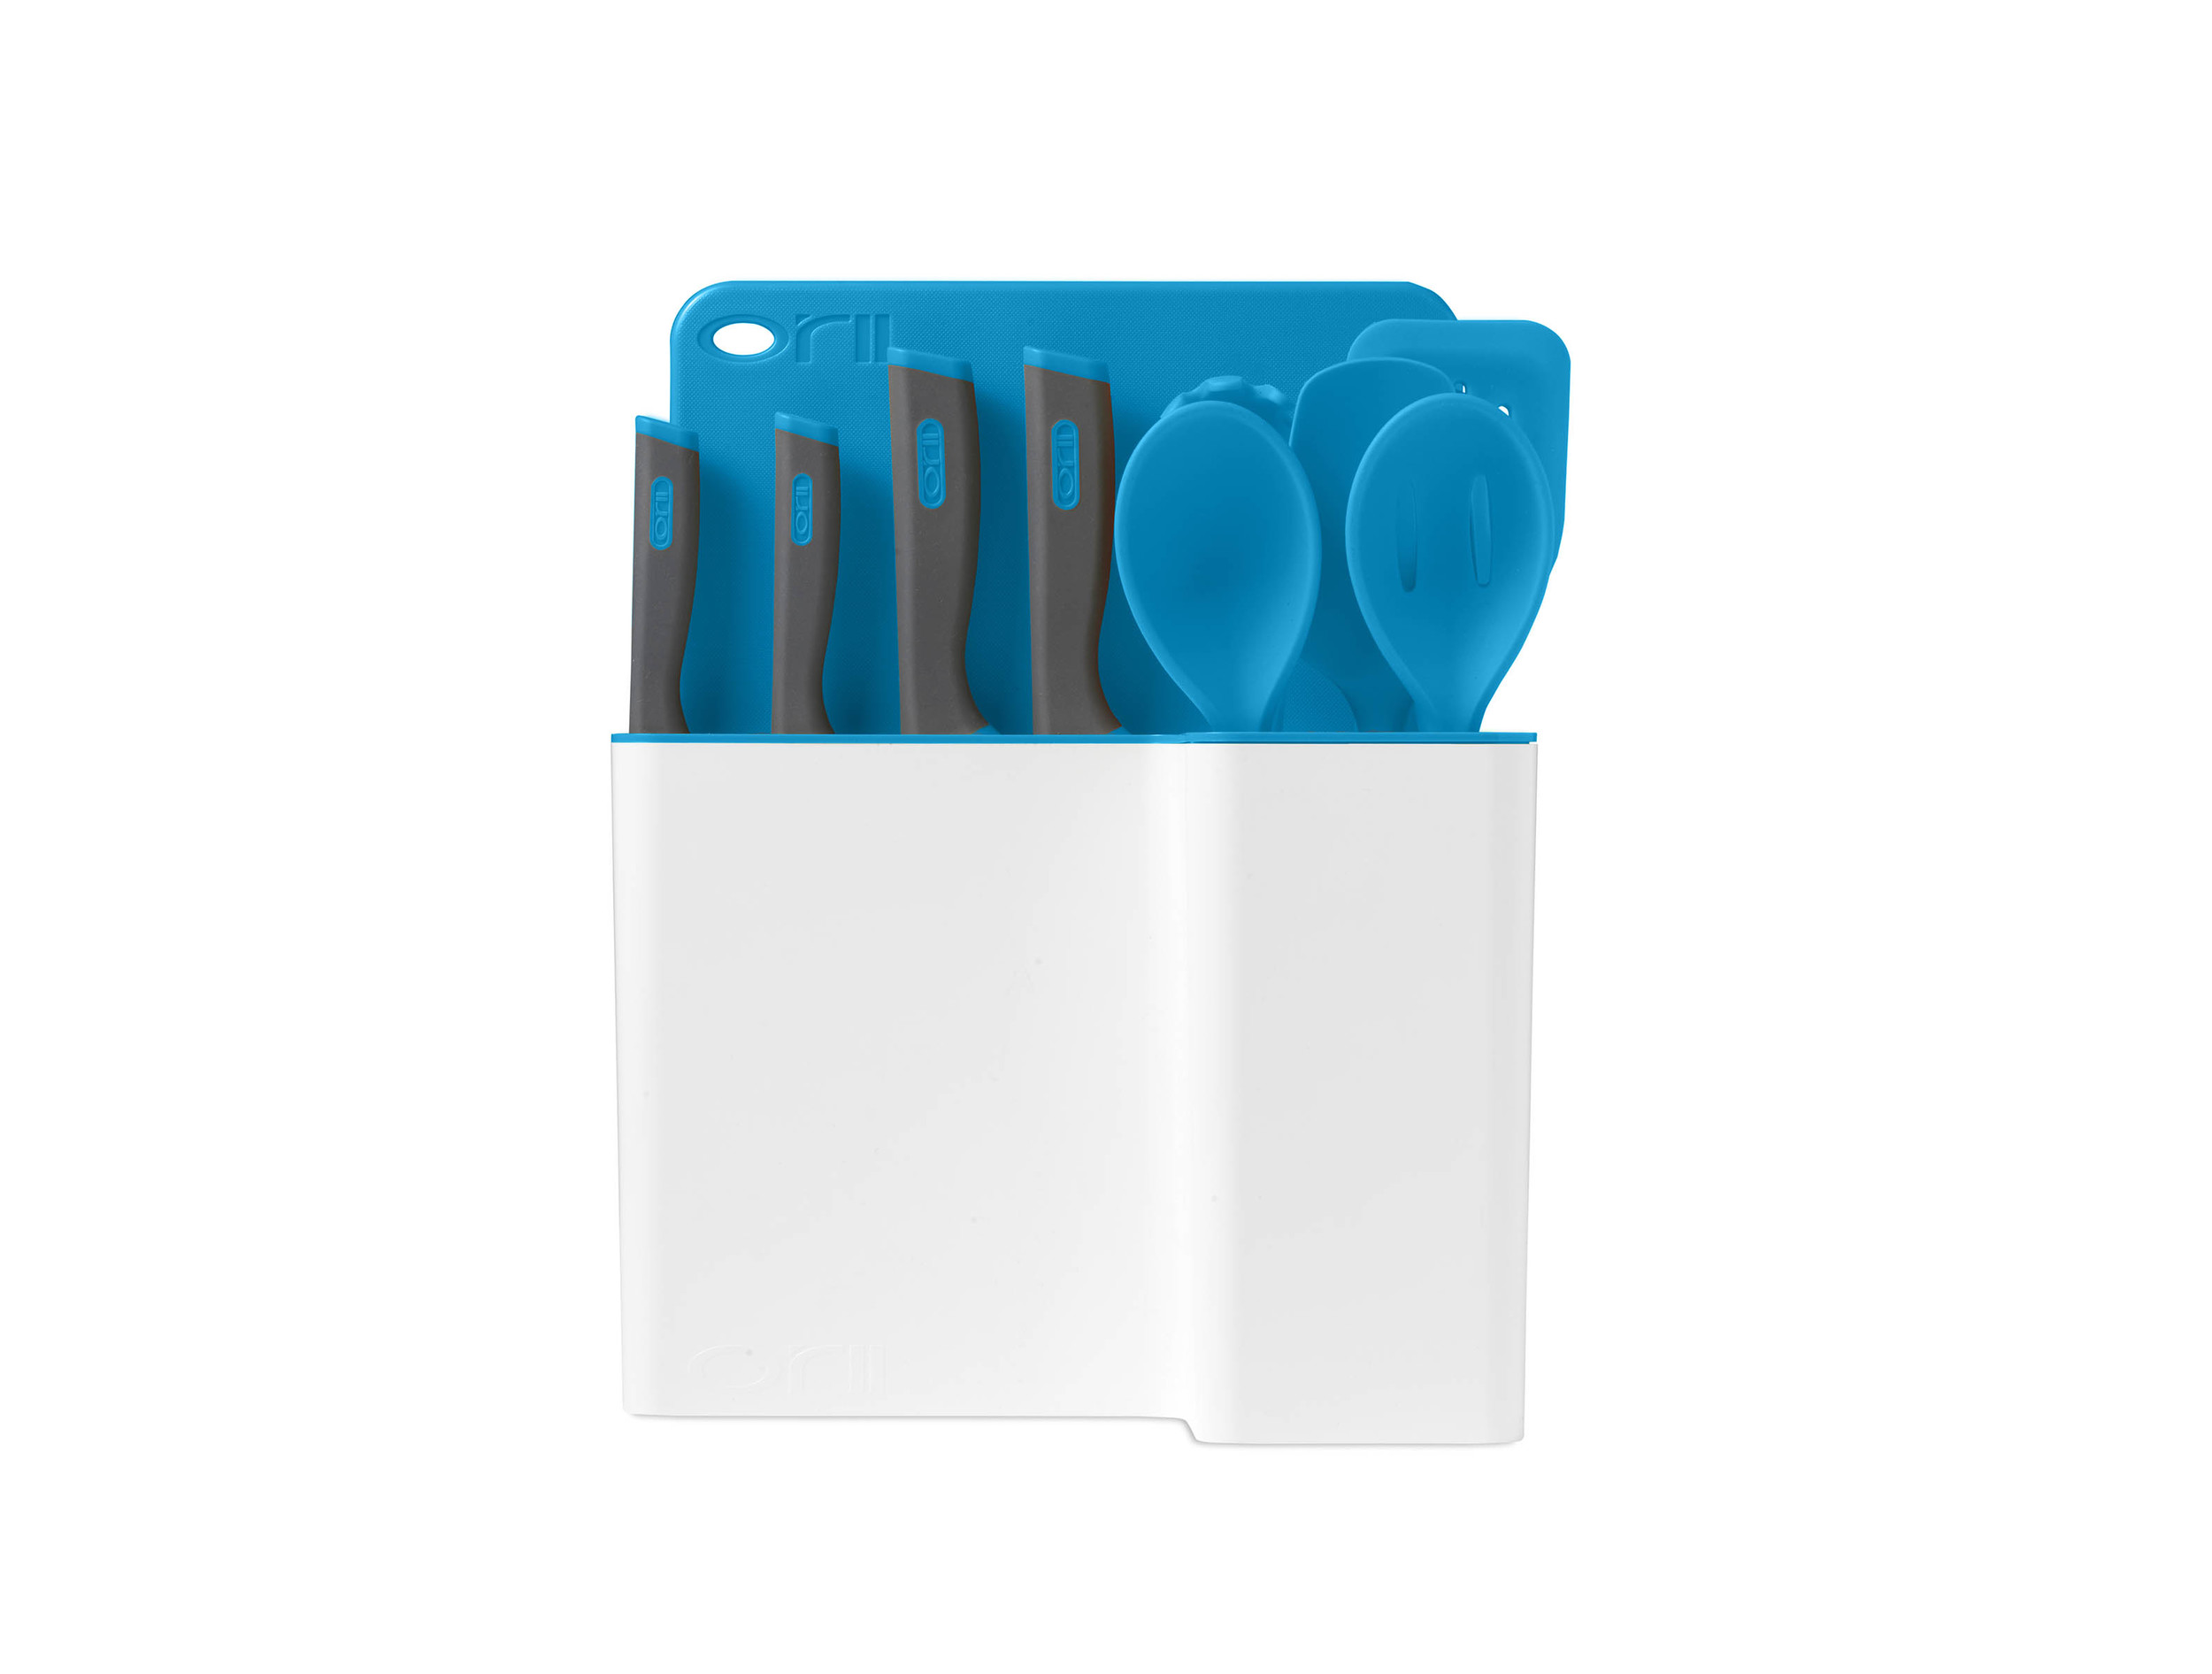 Orii 12PC MONO KITCHEN ORGANIZATION SET - ICE BLUE